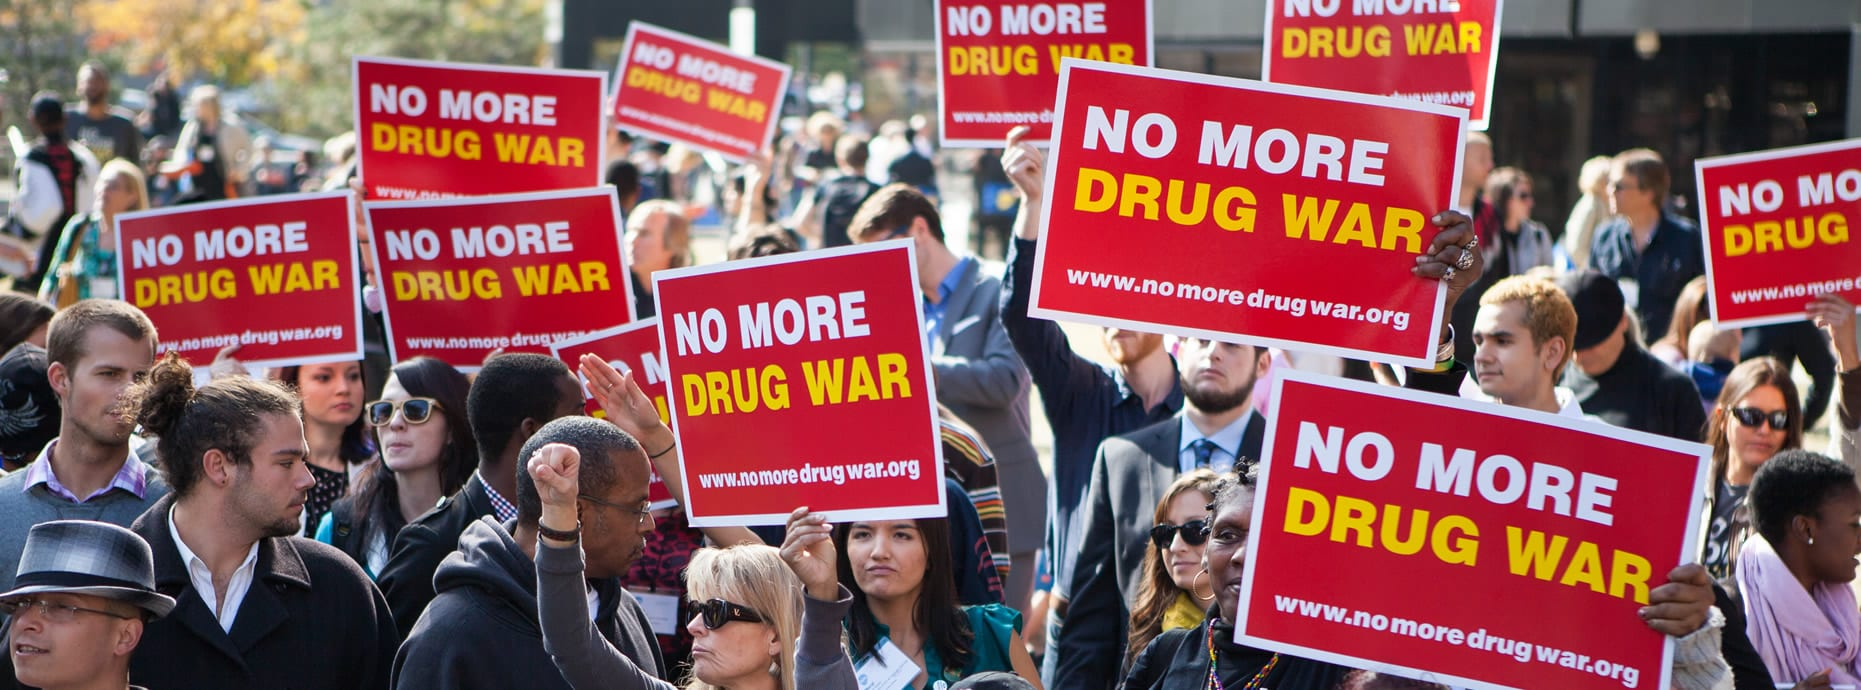 83% of Americans deem war on drugs failure and support new approach, poll shows